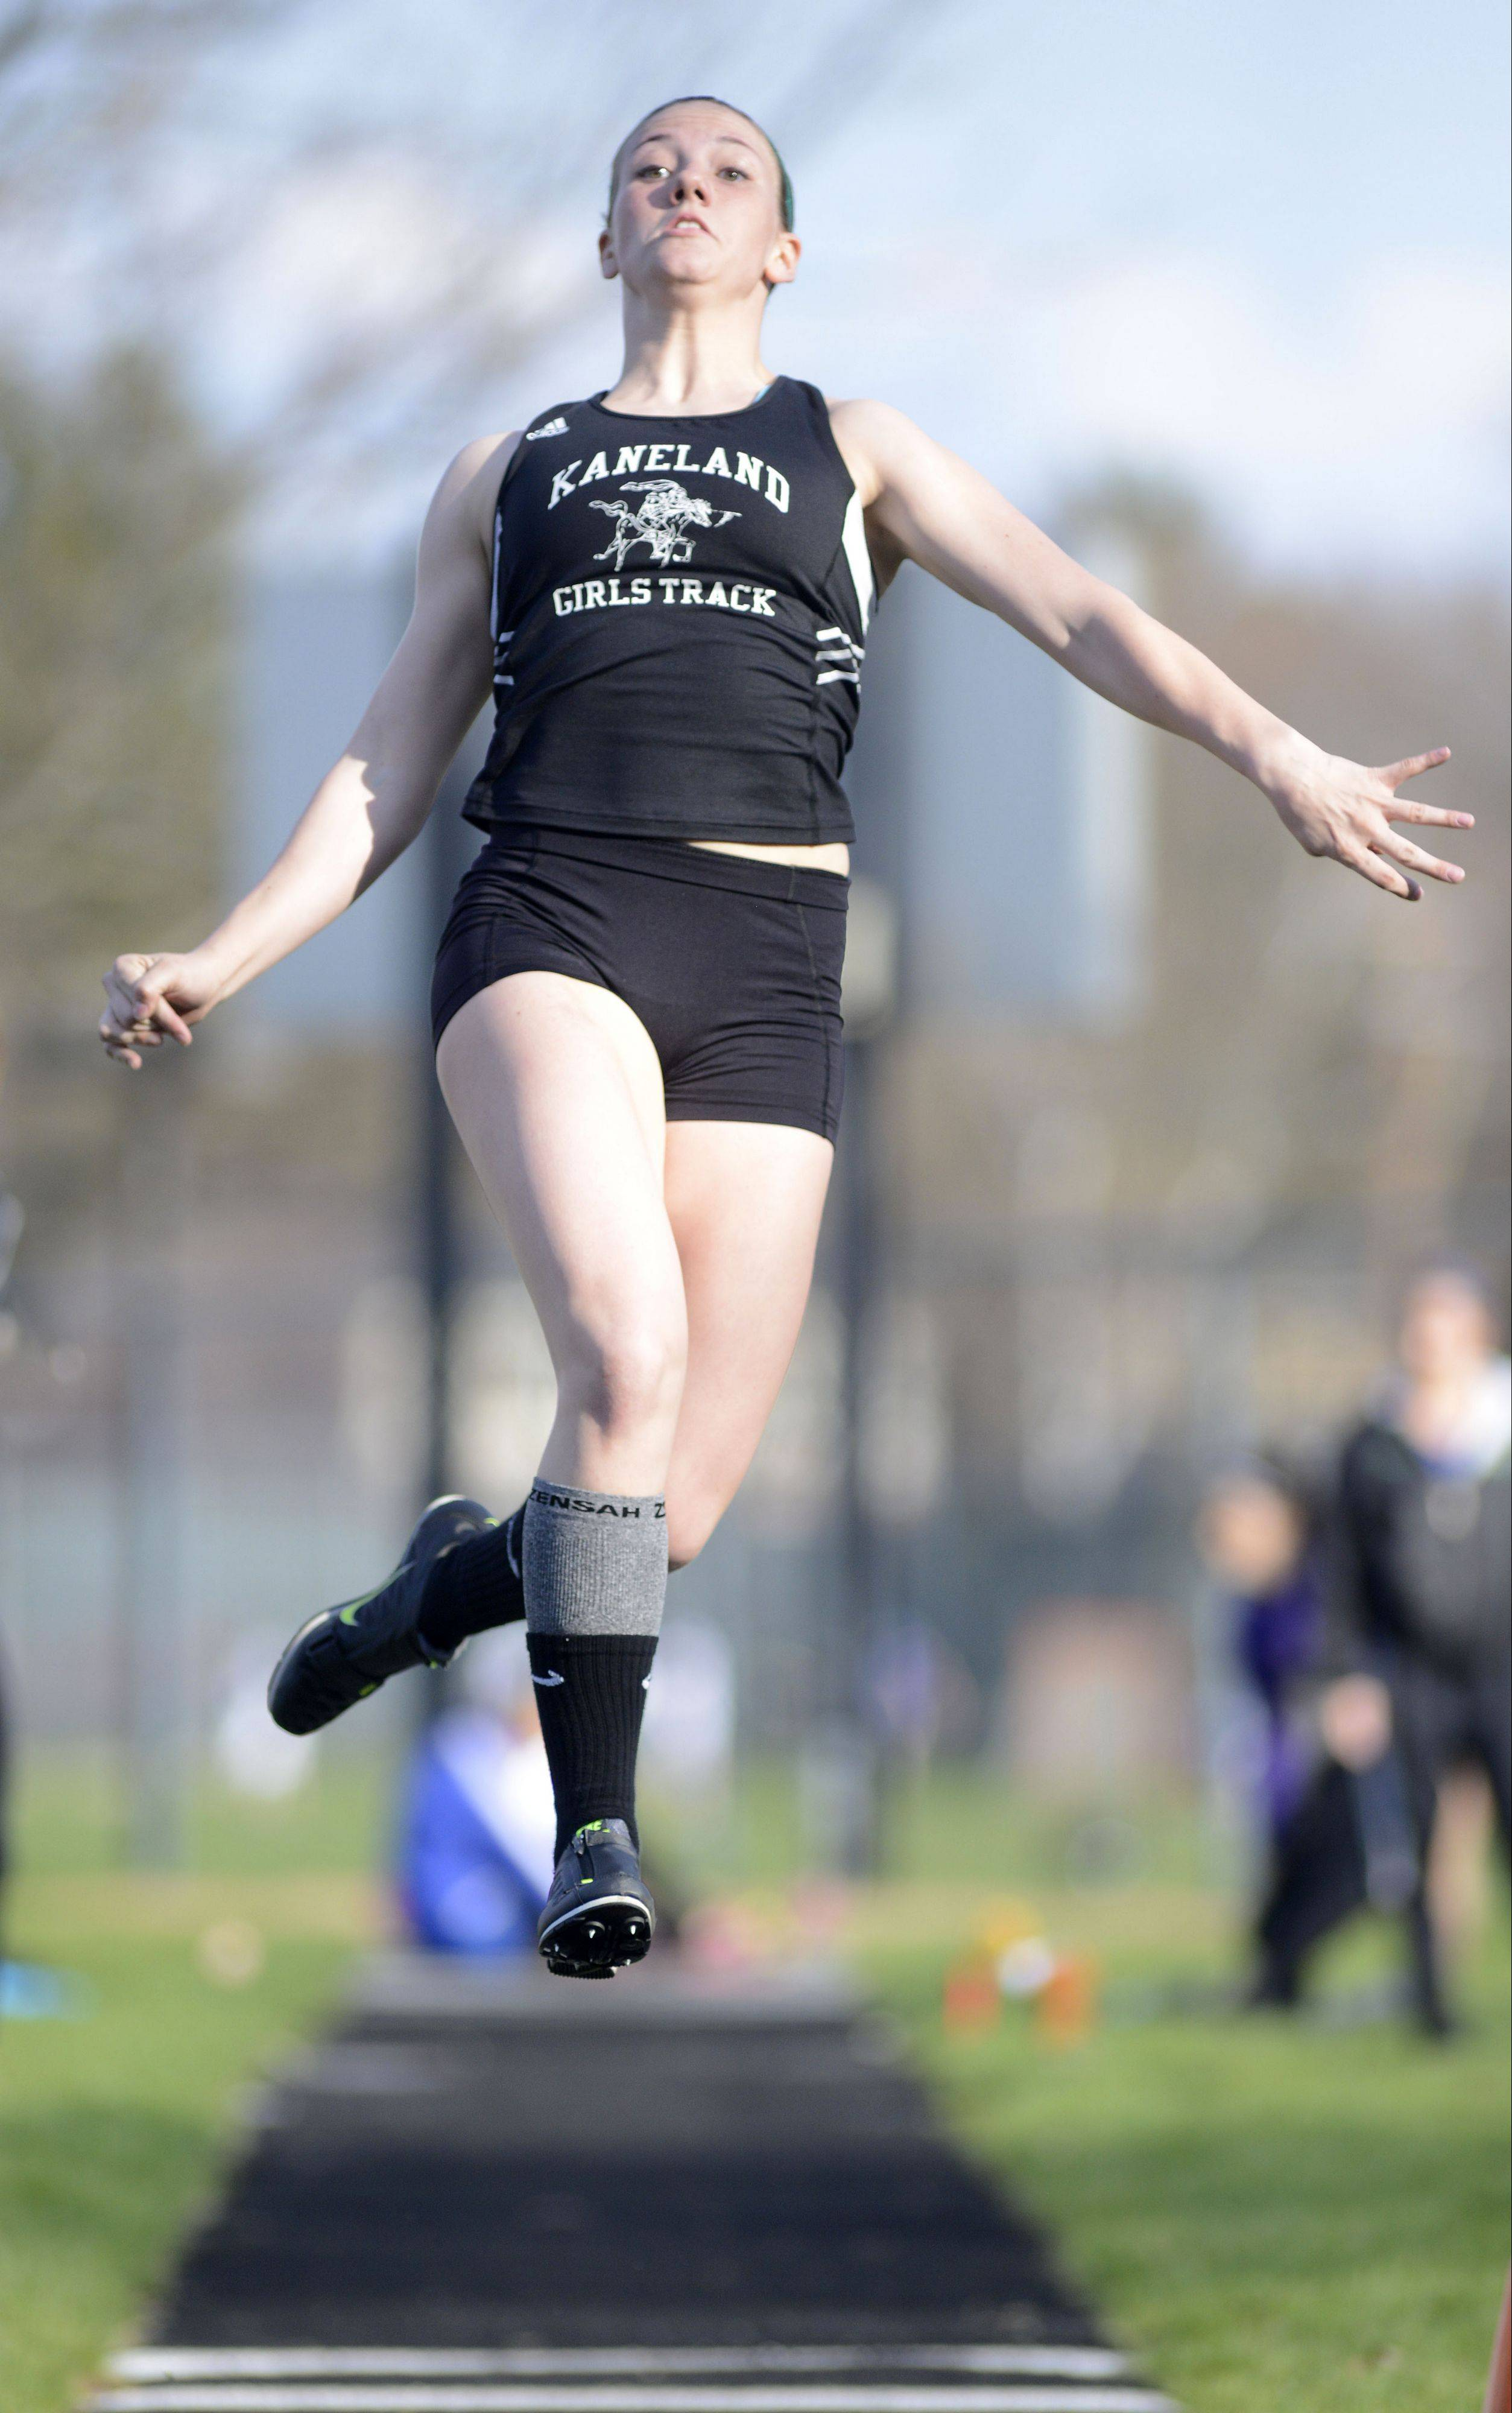 Kaneland's Lauren Zick competes in the long jump Friday in Geneva.